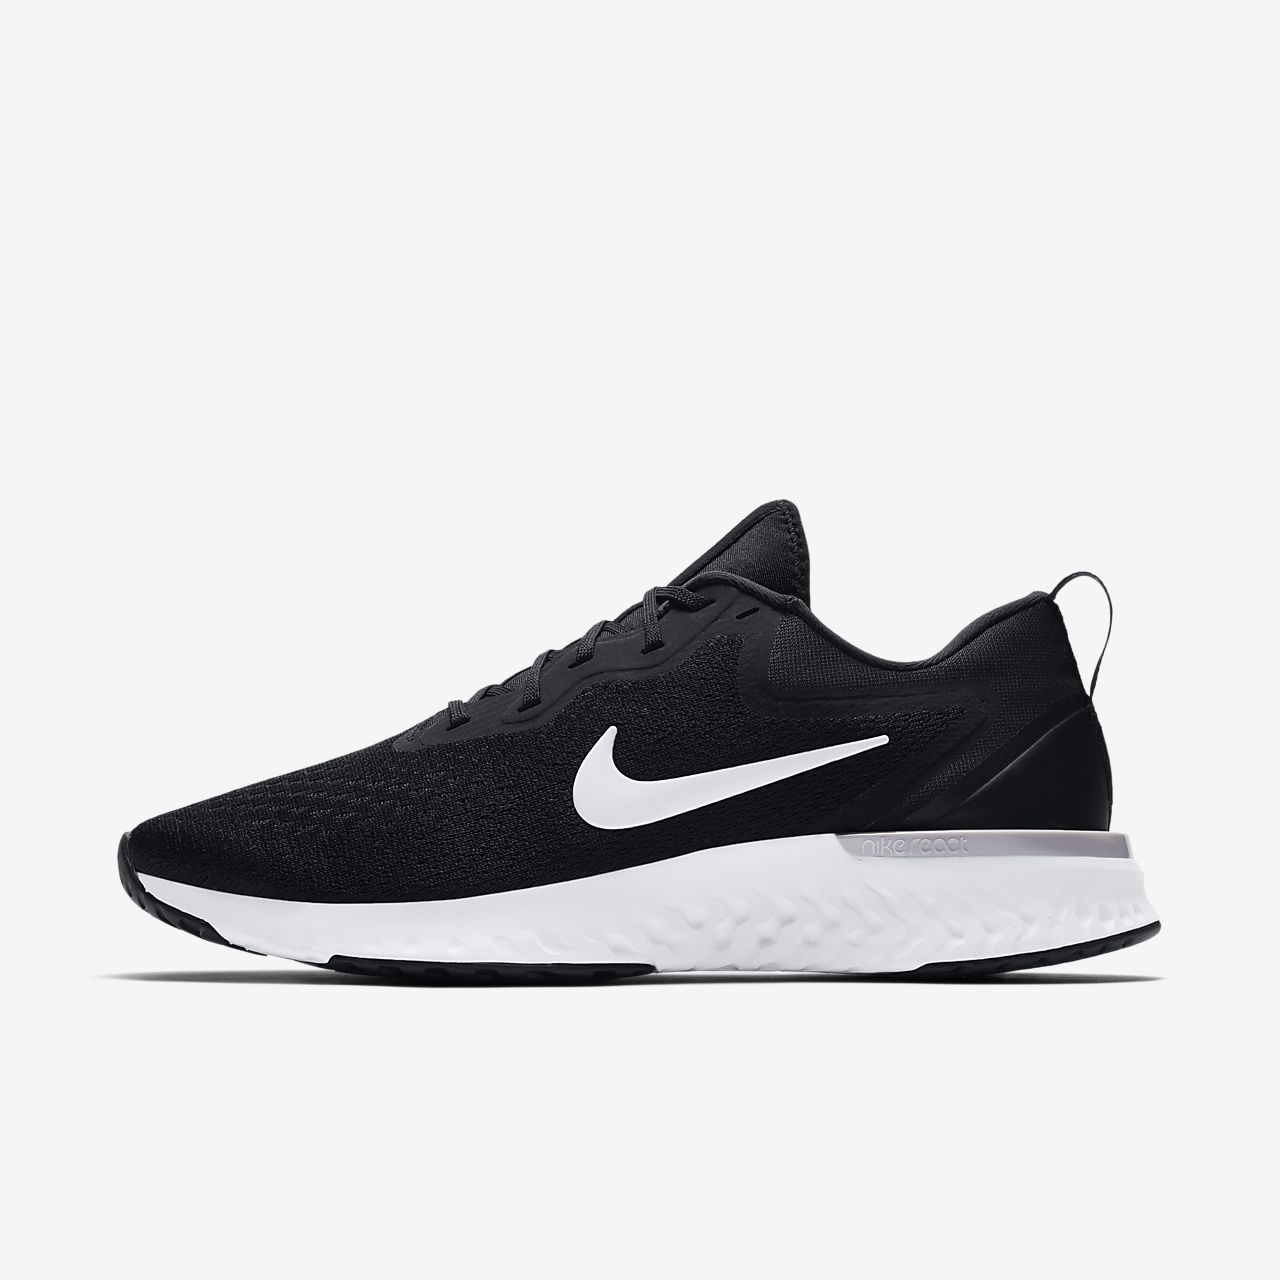 ... Chaussure de running Nike Odyssey React pour Homme